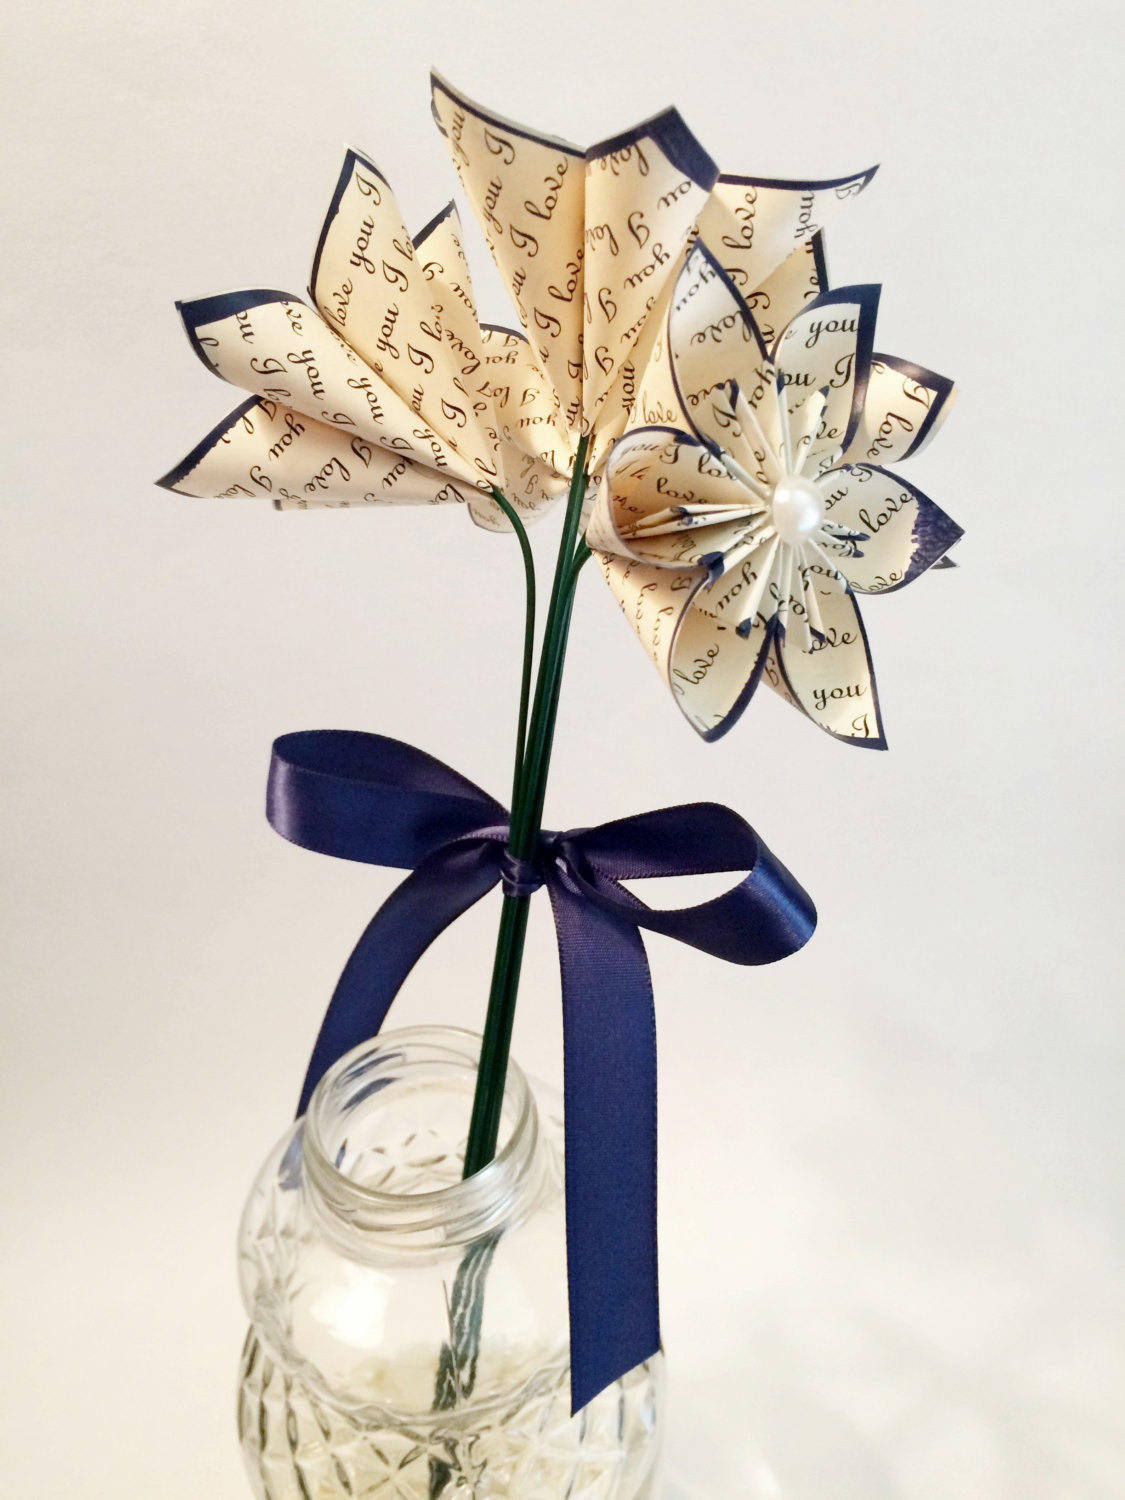 5 I Love You Paper Flowers- Ready To Ship, perfect for her, handmade anniversary gift, wedding decor, origami, navy blue daisy,small bouquet